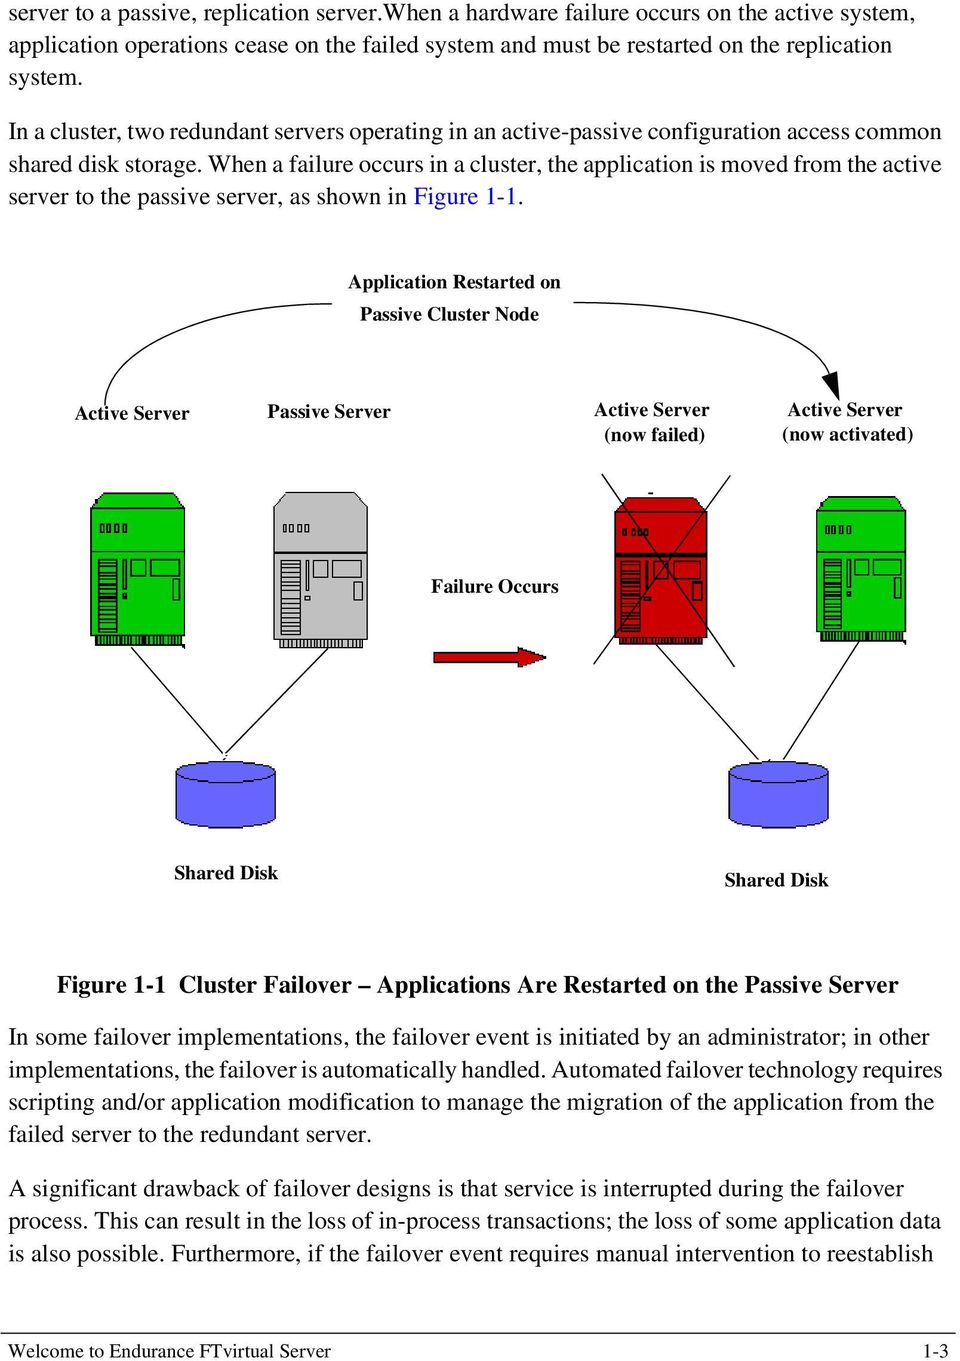 When a failure occurs in a cluster, the application is moved from the active server to the passive server, as shown in Figure 1-1.